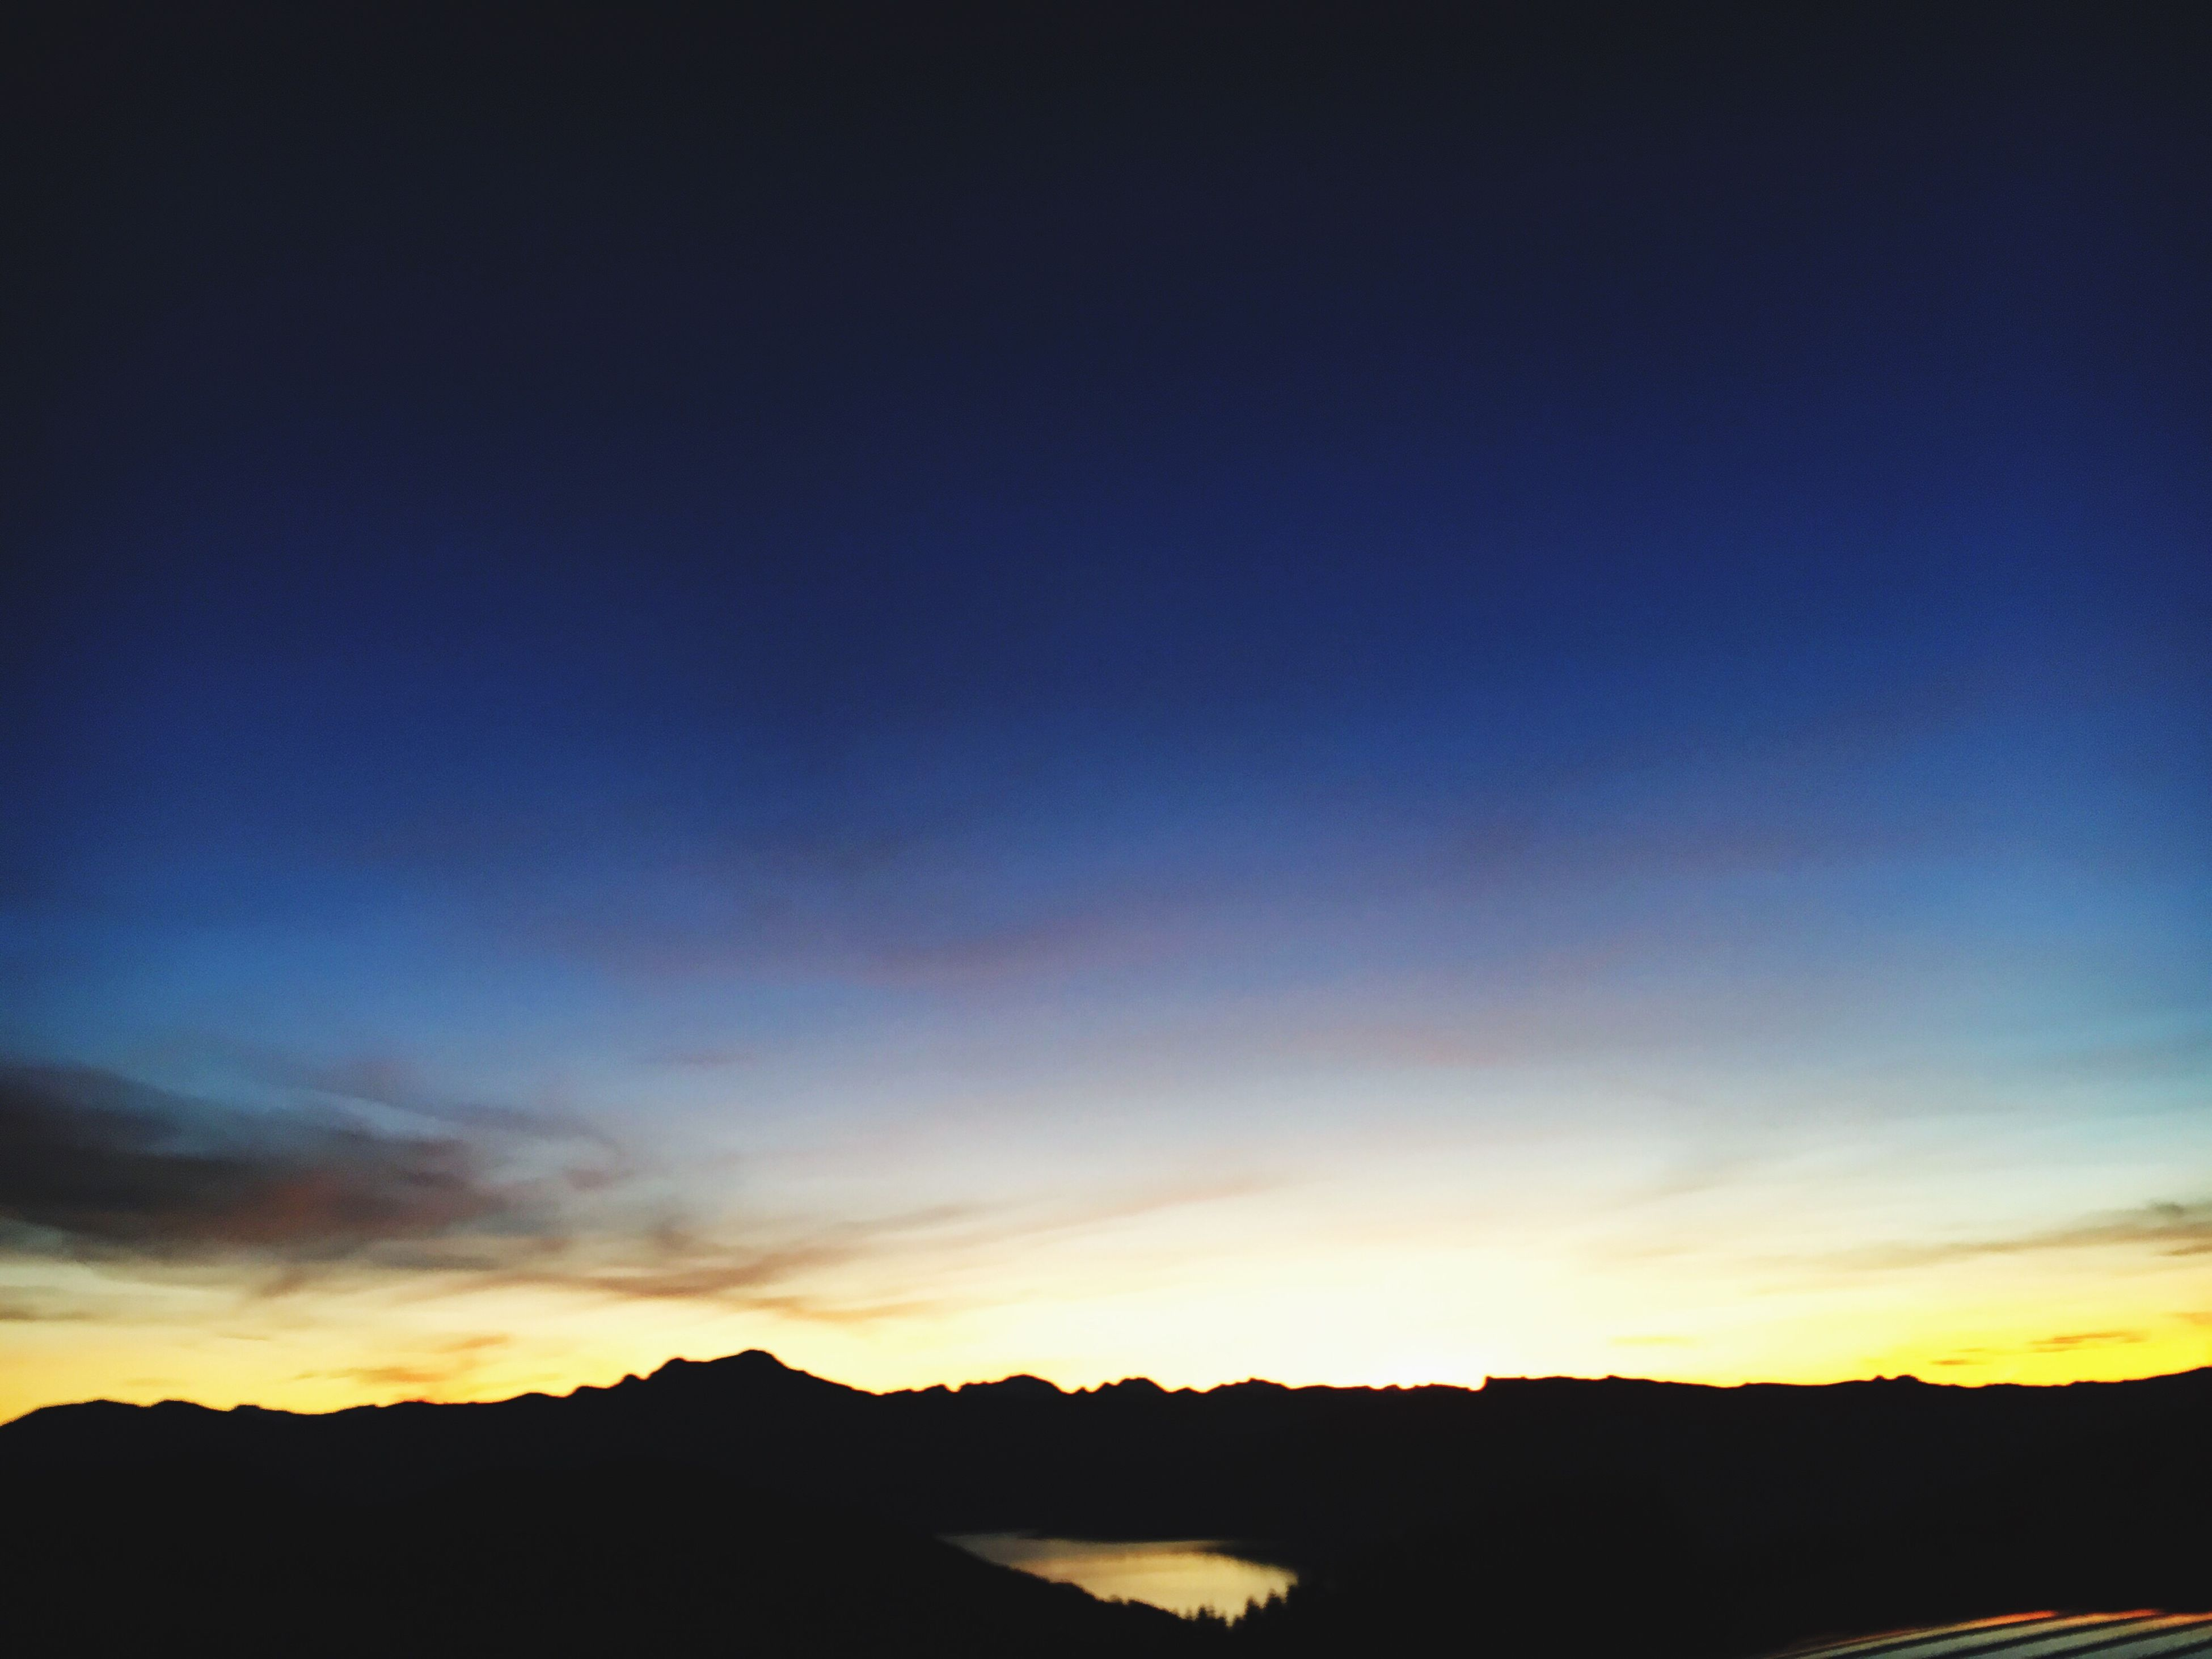 silhouette, sunset, tranquil scene, scenics, tranquility, beauty in nature, sky, nature, copy space, idyllic, landscape, dark, dusk, outline, blue, outdoors, orange color, no people, cloud, calm